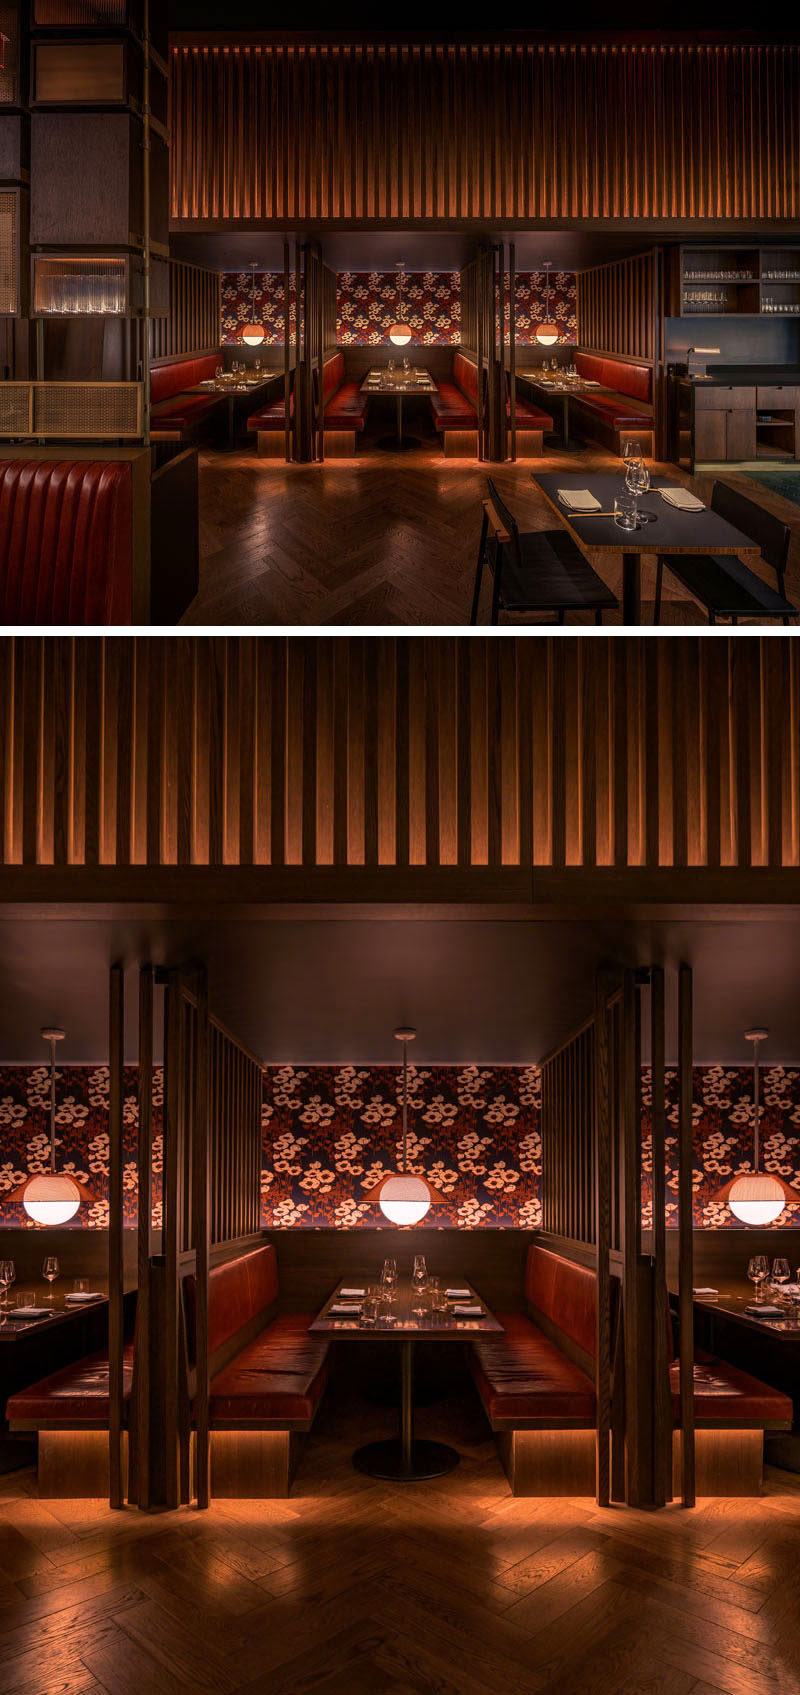 For those who diners who desire more intimate encounters, this modern restaurant features booths lined with poppy-patterned wallpaper and red leather seating. #RestaurantDesign #ModernRestaurant #BoothSeating